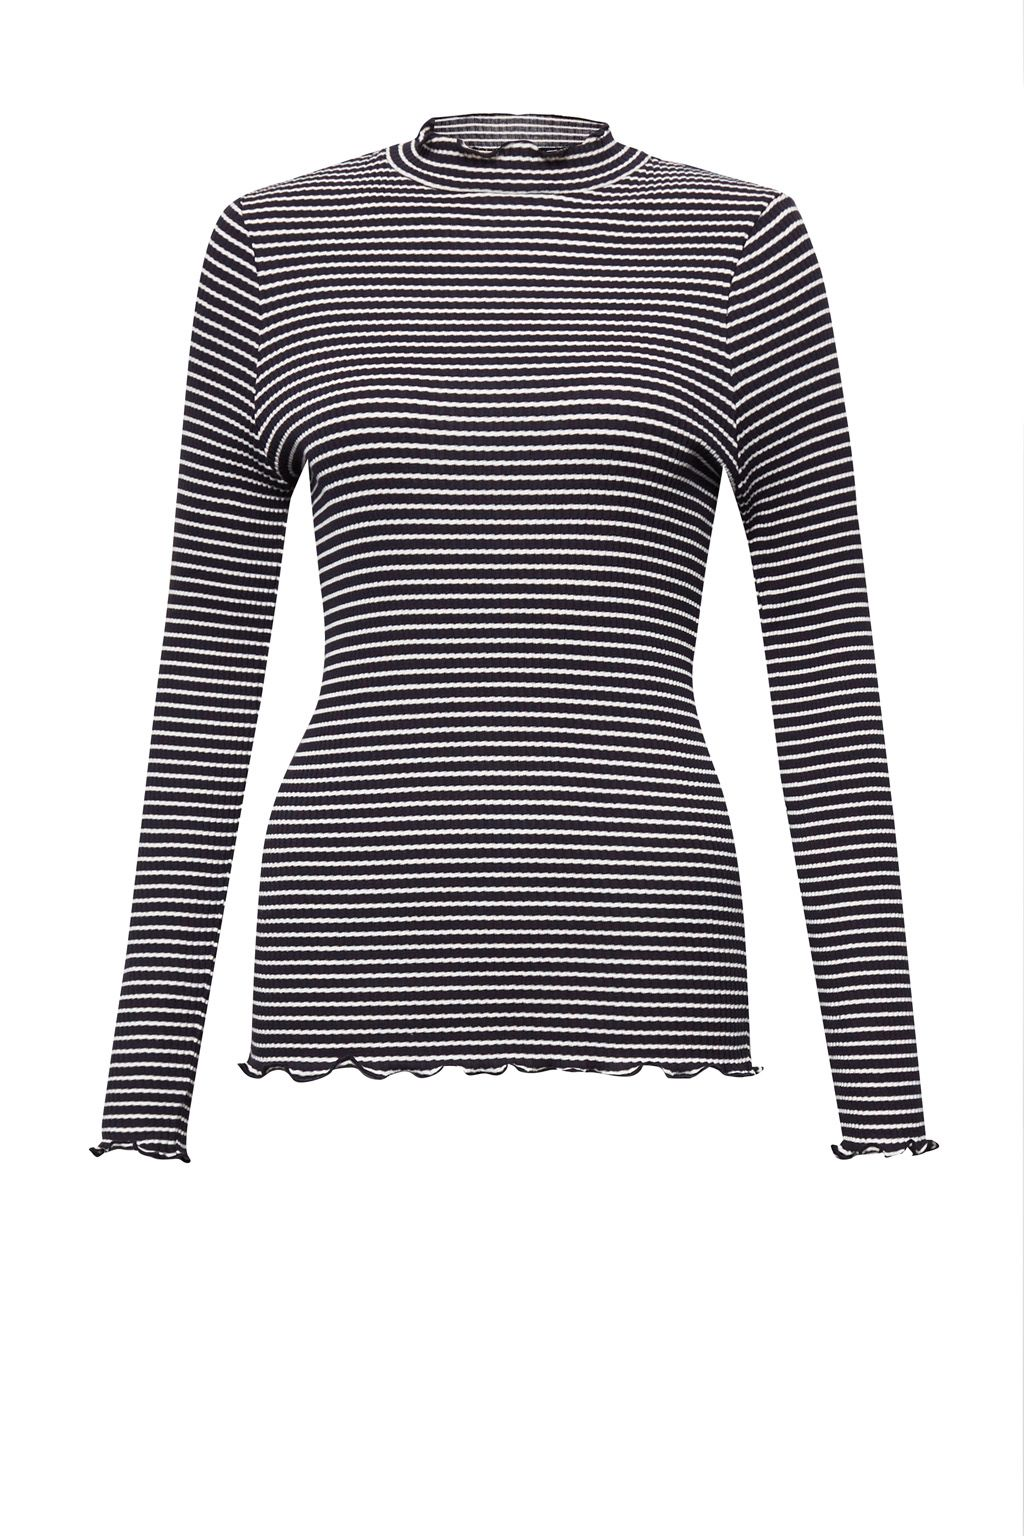 French Connection Tim Tim Ribbed Striped Top, Blue